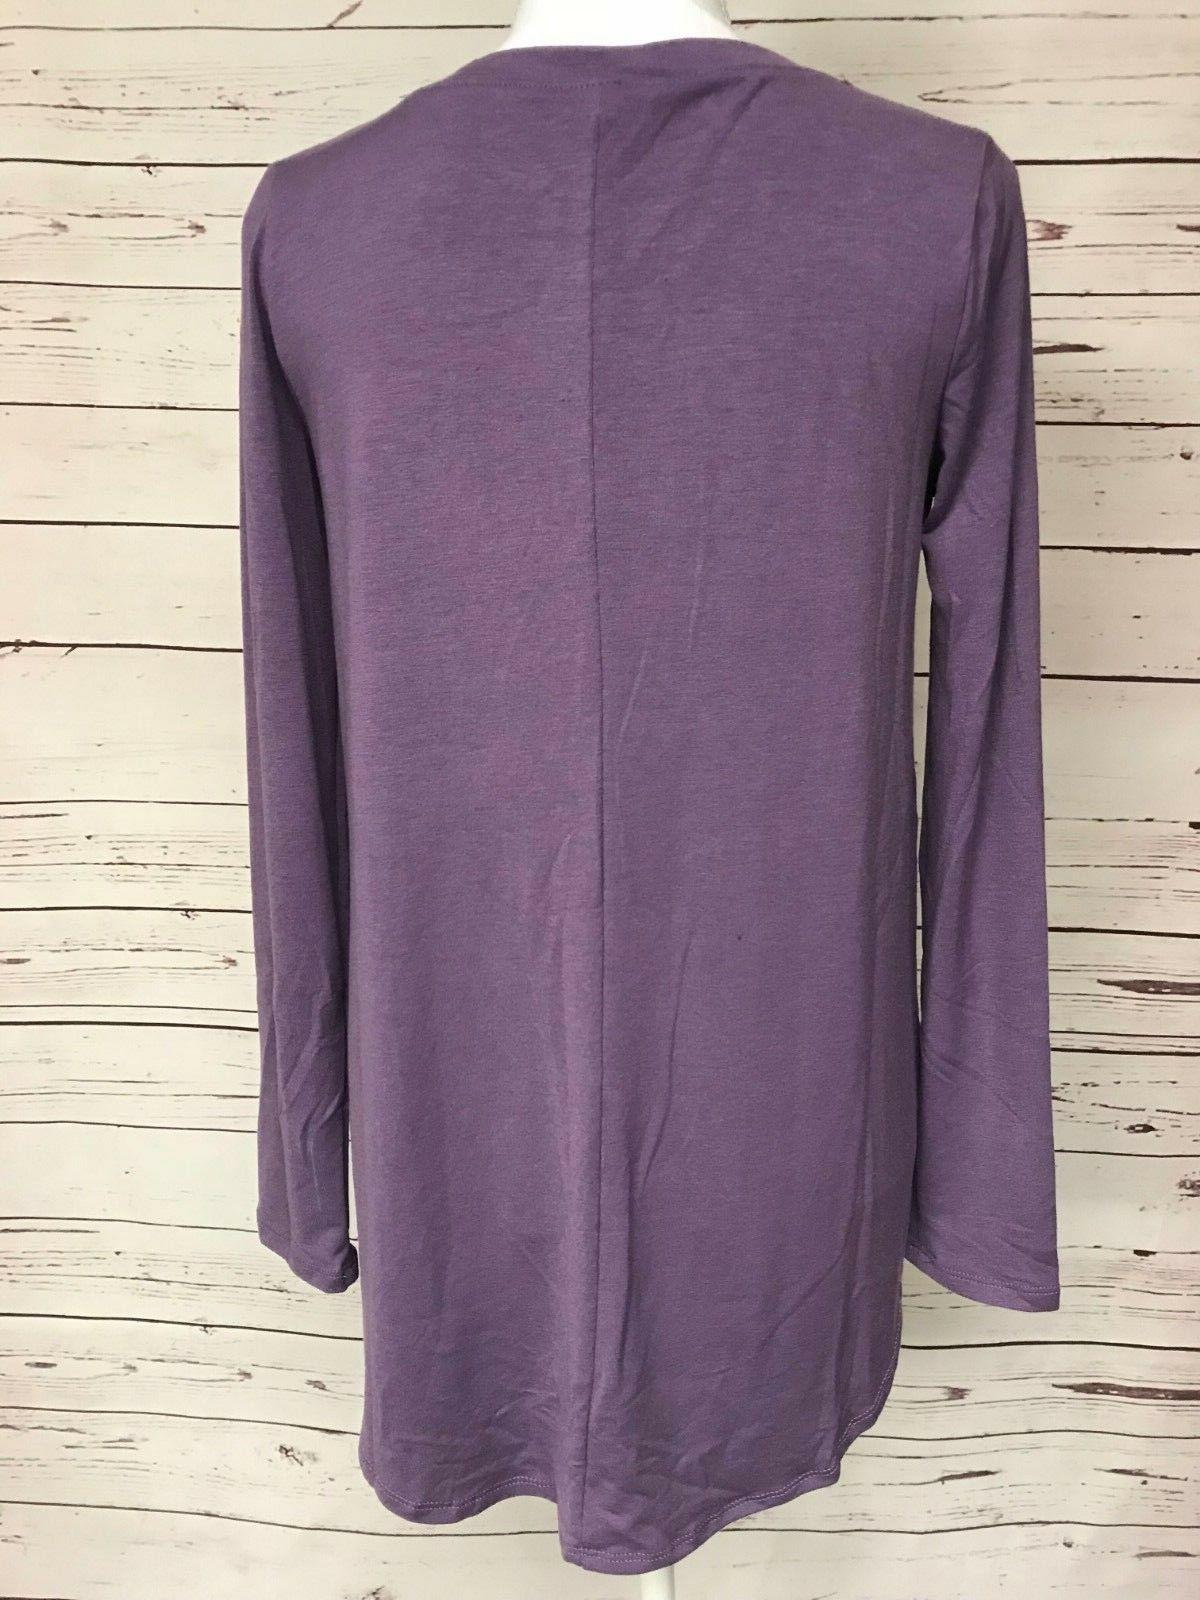 Zenana Purple Tee S M L